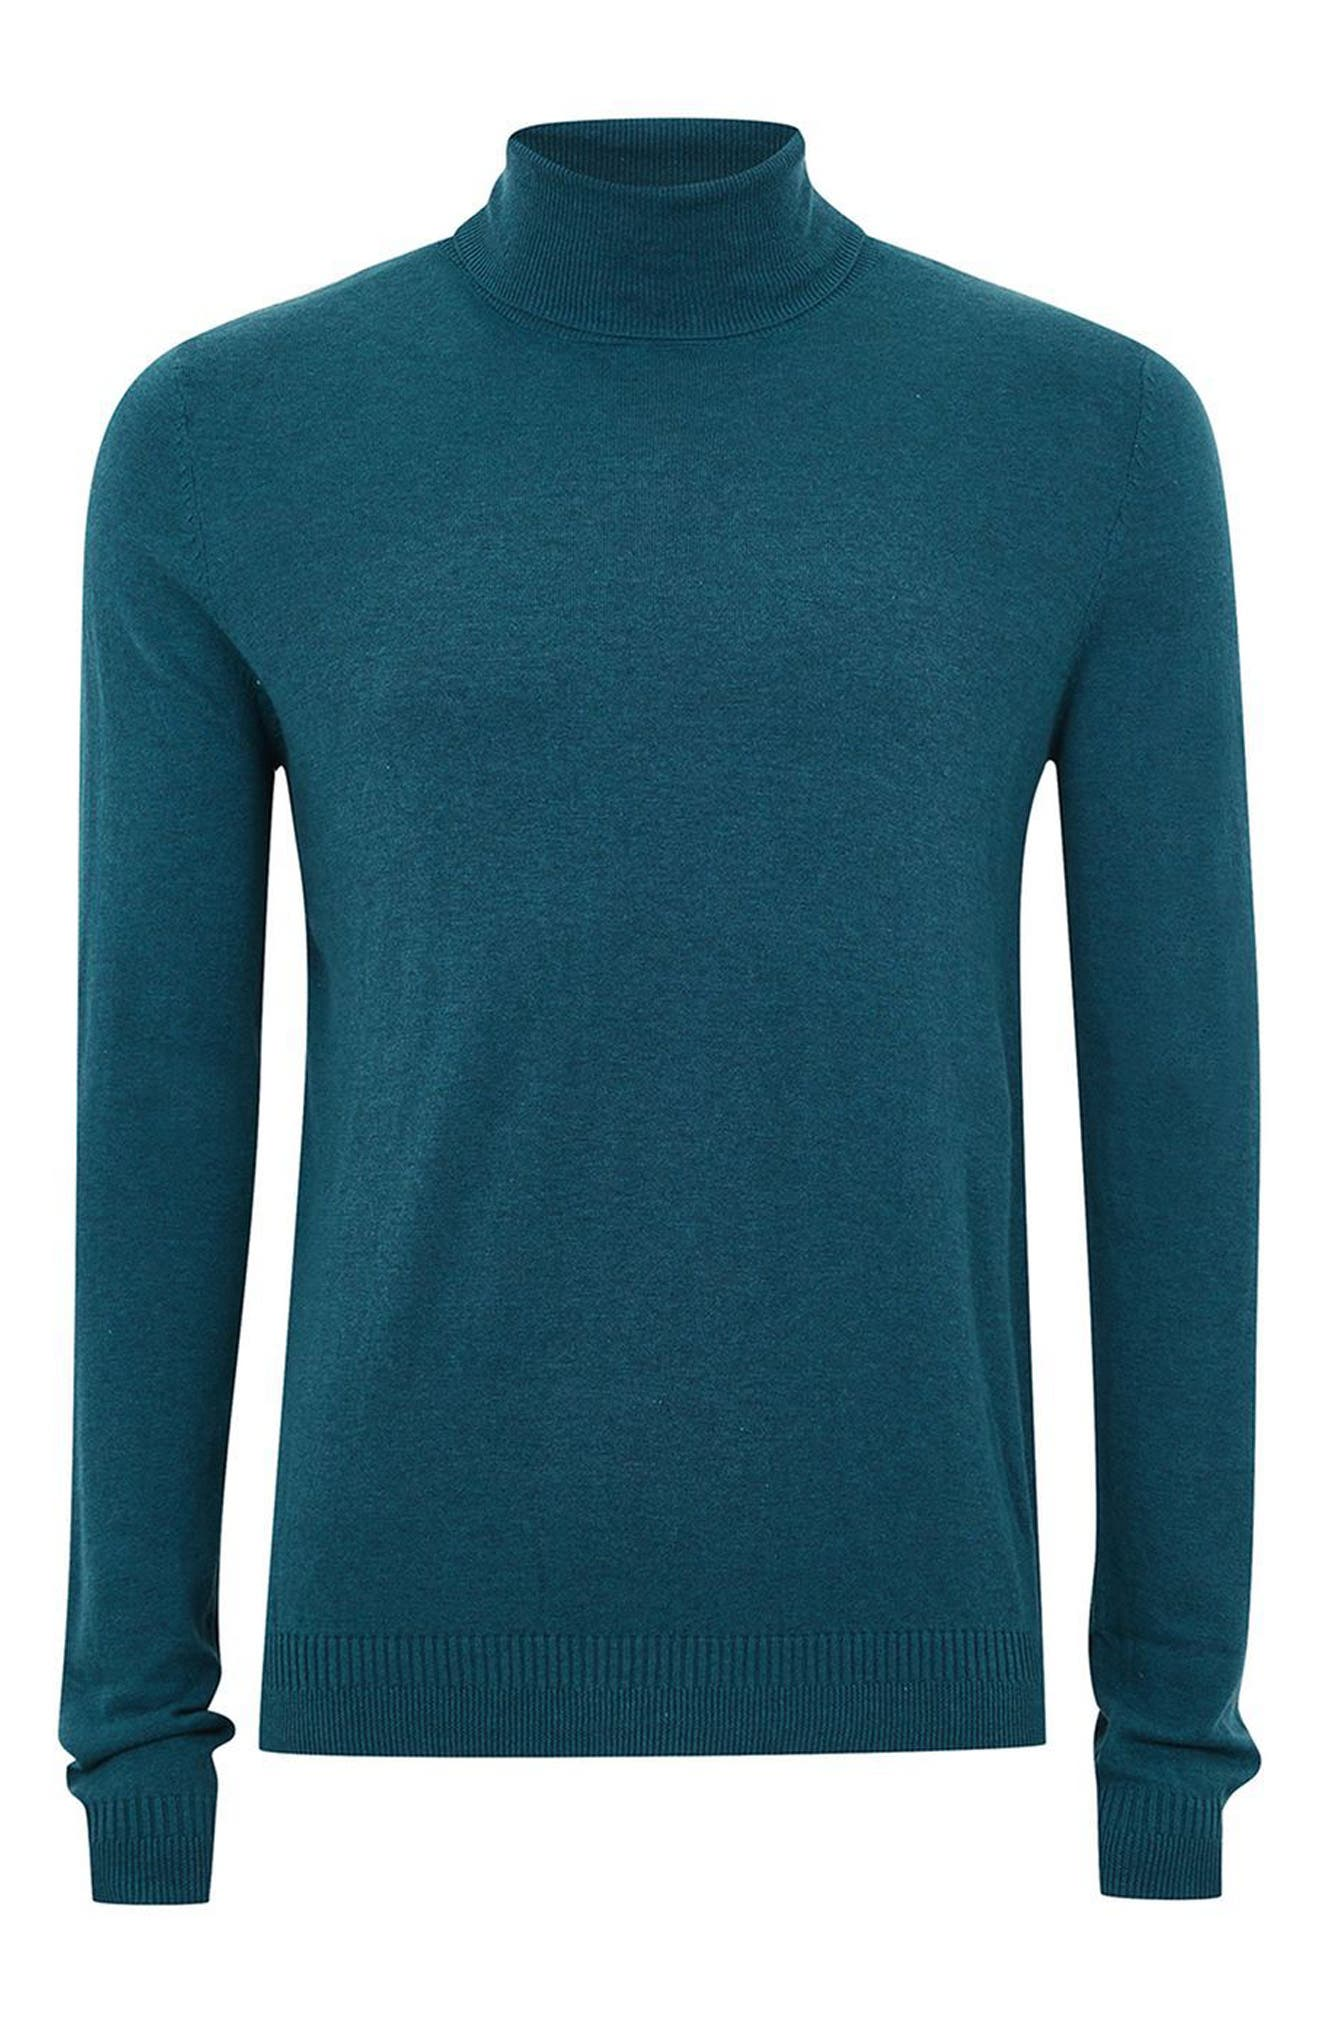 Cotton Turtleneck Sweater,                             Alternate thumbnail 4, color,                             Blue